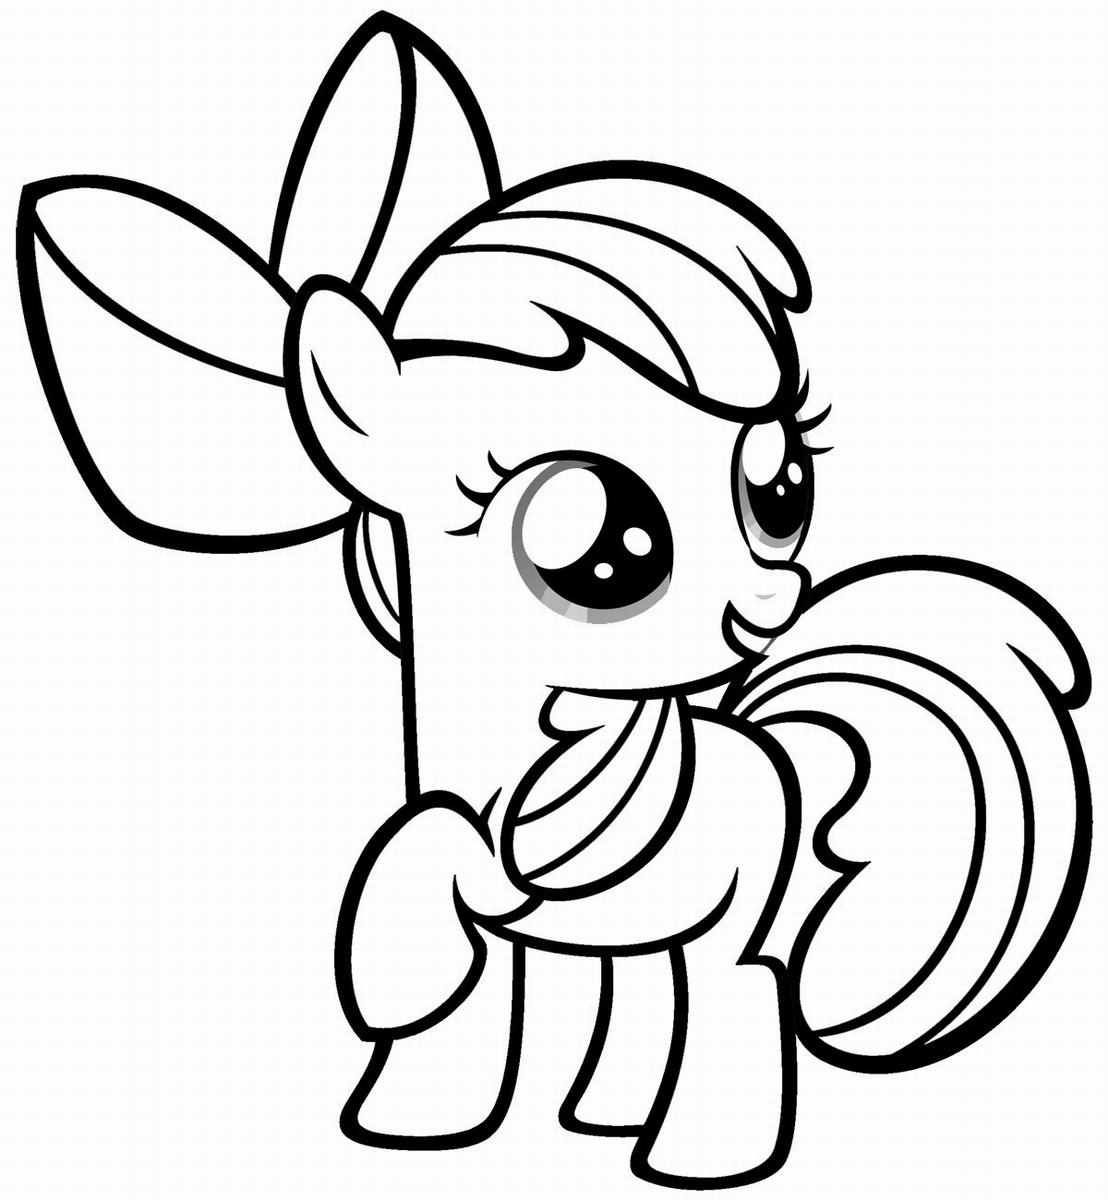 my little pony color sheet my little pony coloring pages color little my sheet pony